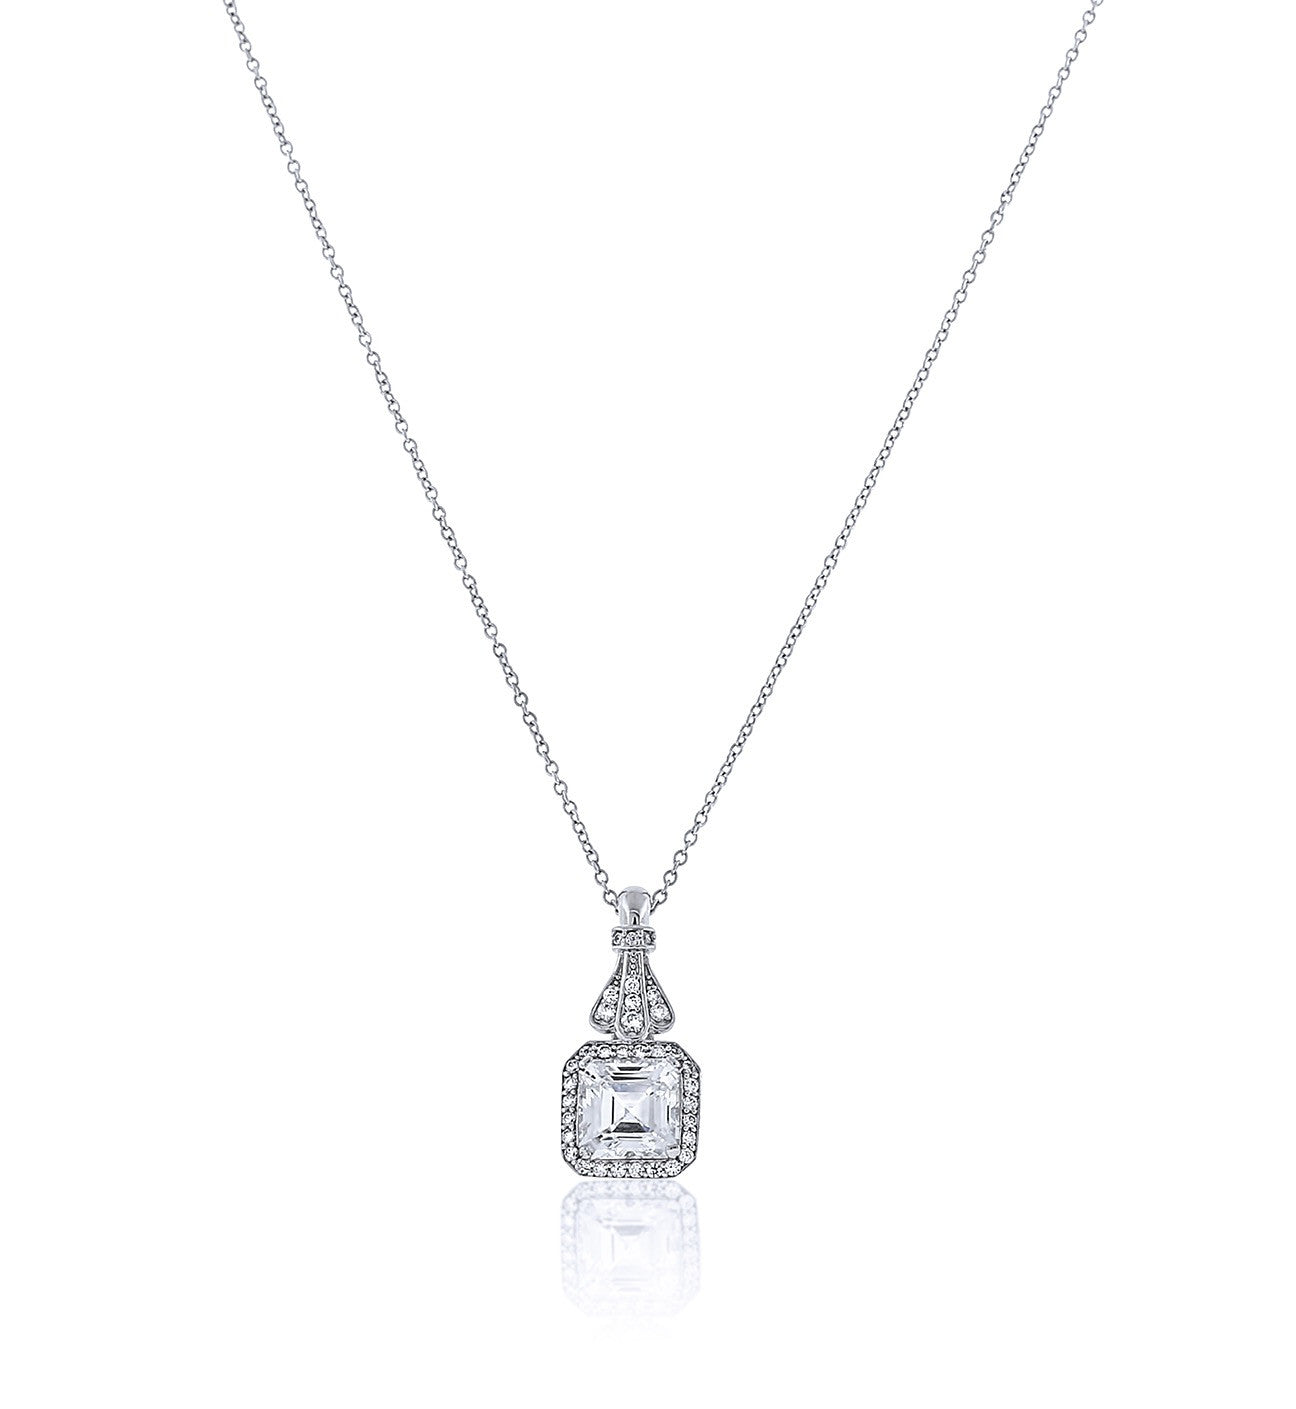 white gold macy solitaire in s jewelry princess women necklace metallic cut diamond macys pendant lyst designer ct tw